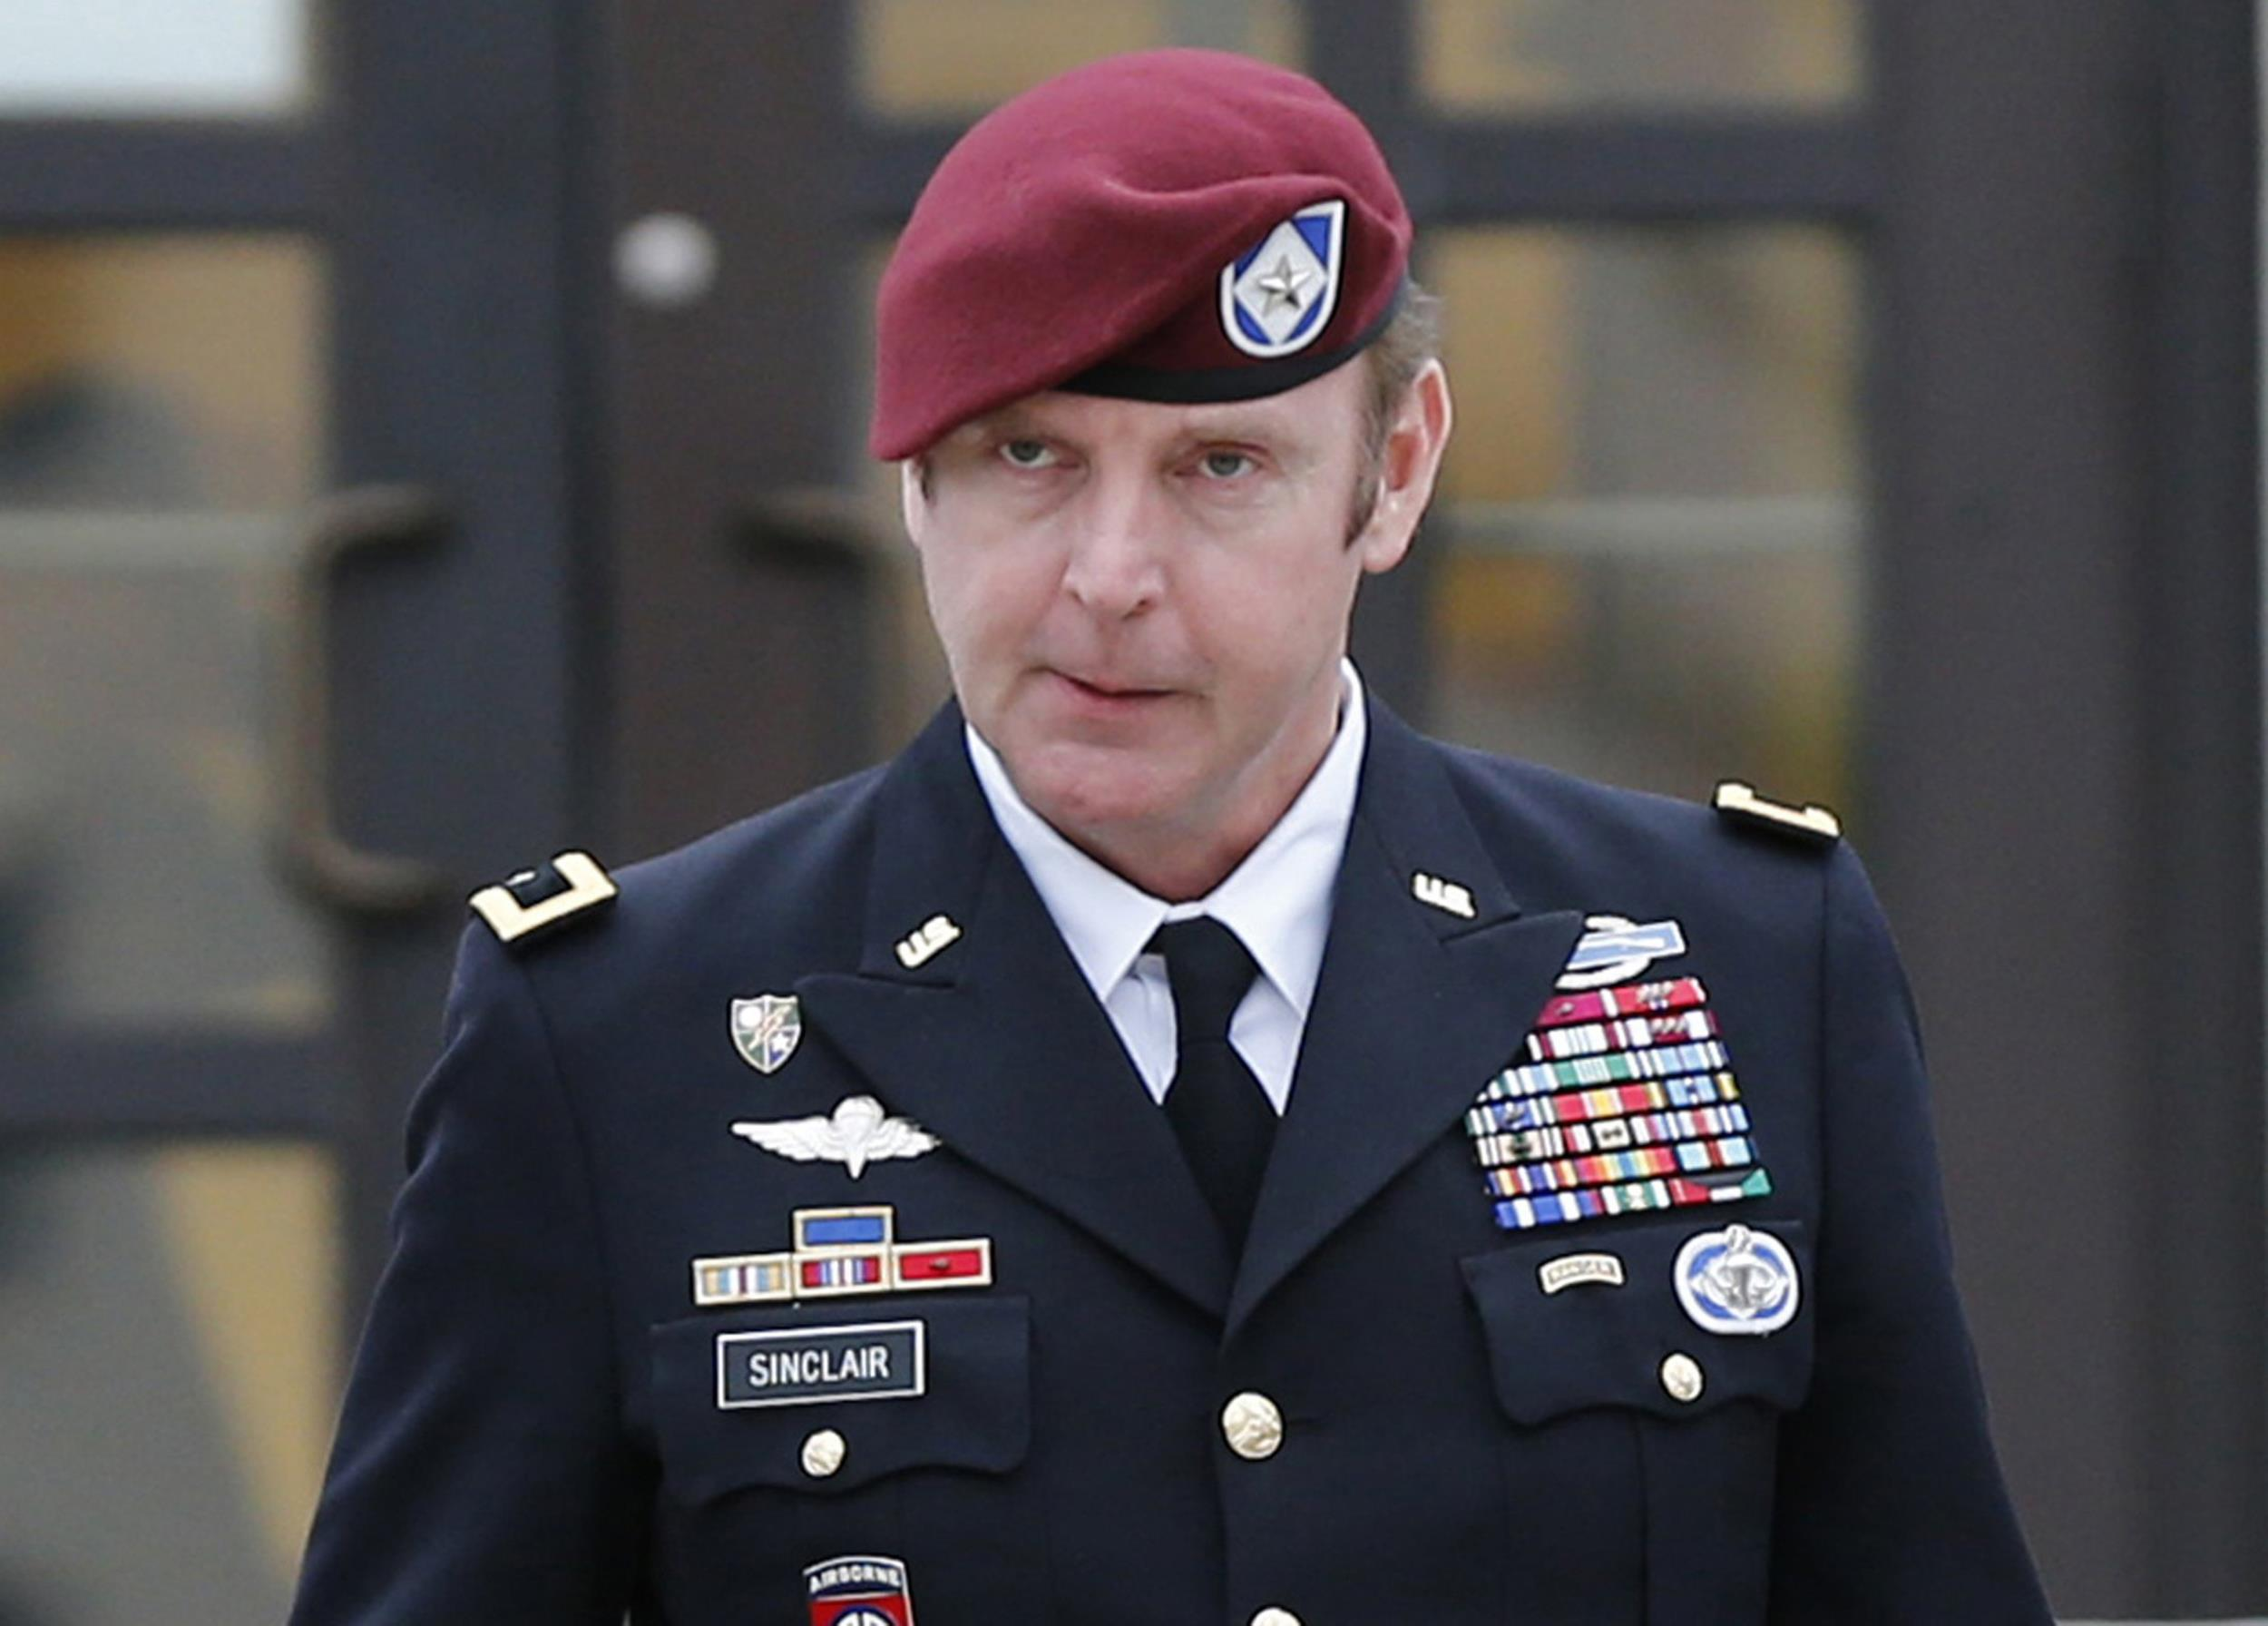 Image: U.S. Army Brigadier General Sinclair leaves the courthouse at Fort Bragg in Fayetteville, N.C., on March 4.